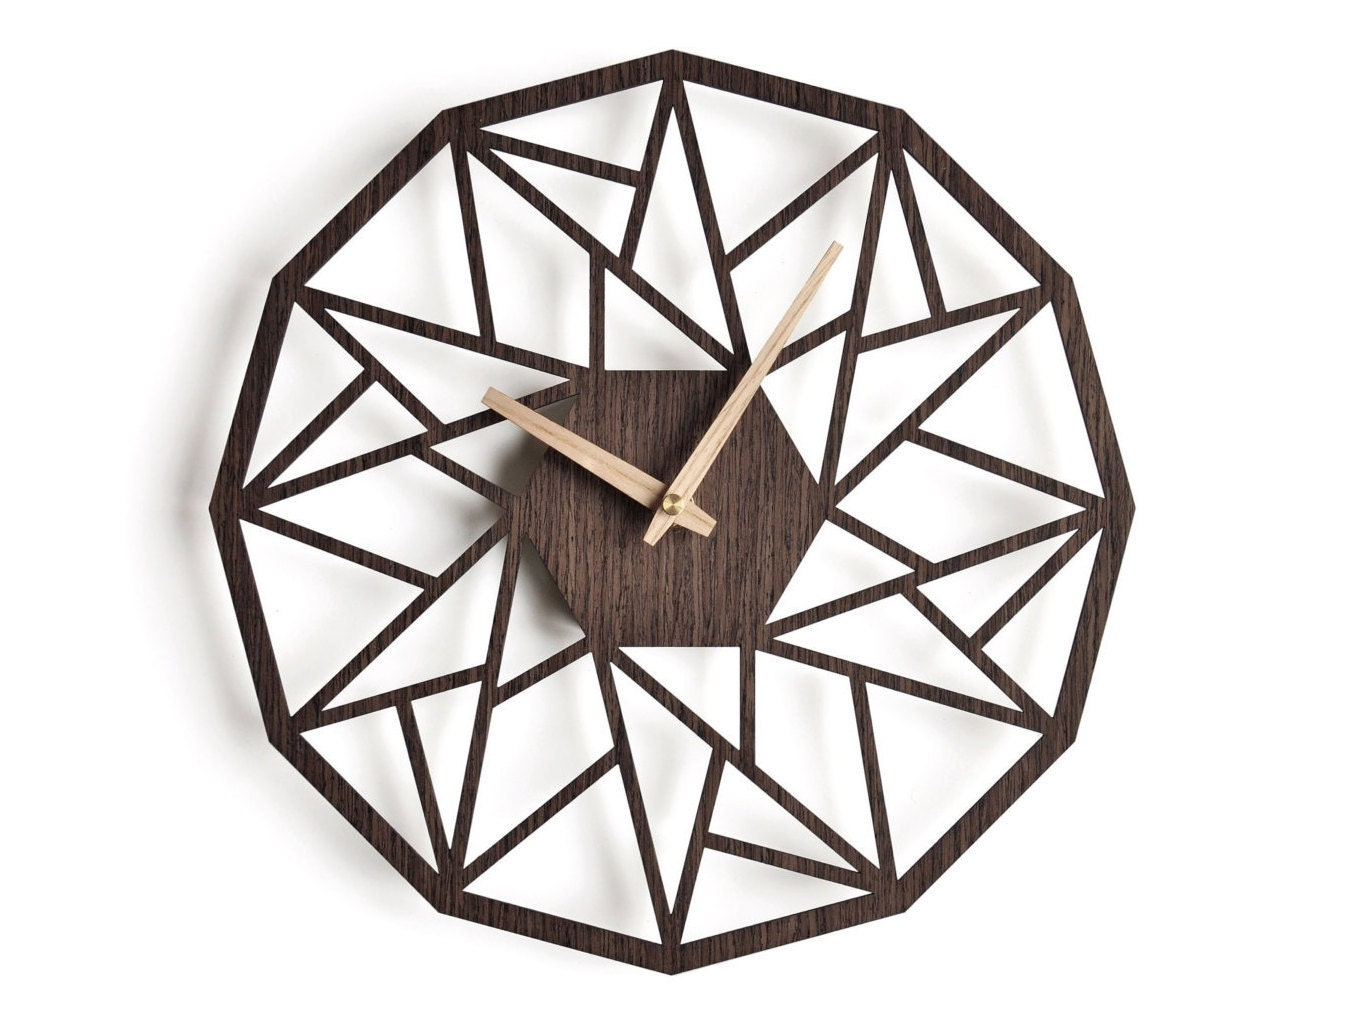 Oversized wall clock 30 cm 12 in modern clock geometric request a custom order and have something made just for you amipublicfo Gallery